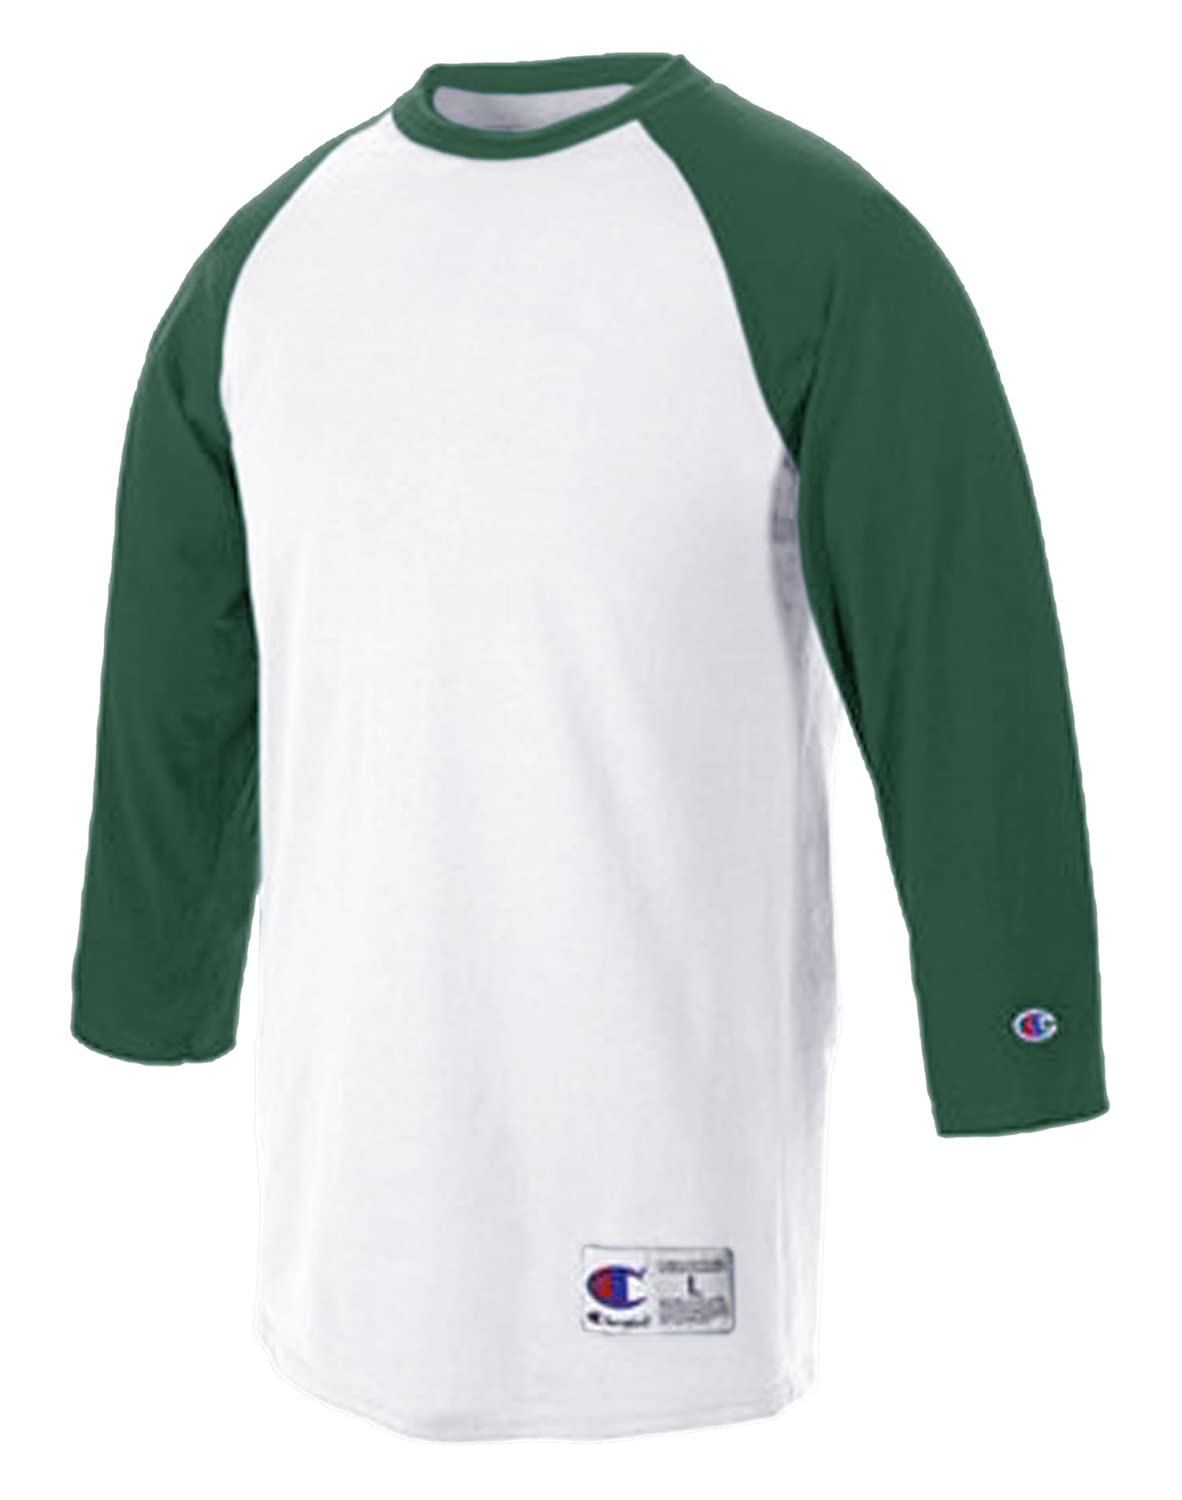 Champion SHIRT メンズ B004EC2AWG S|White/ Dark Green White/ Dark Green S